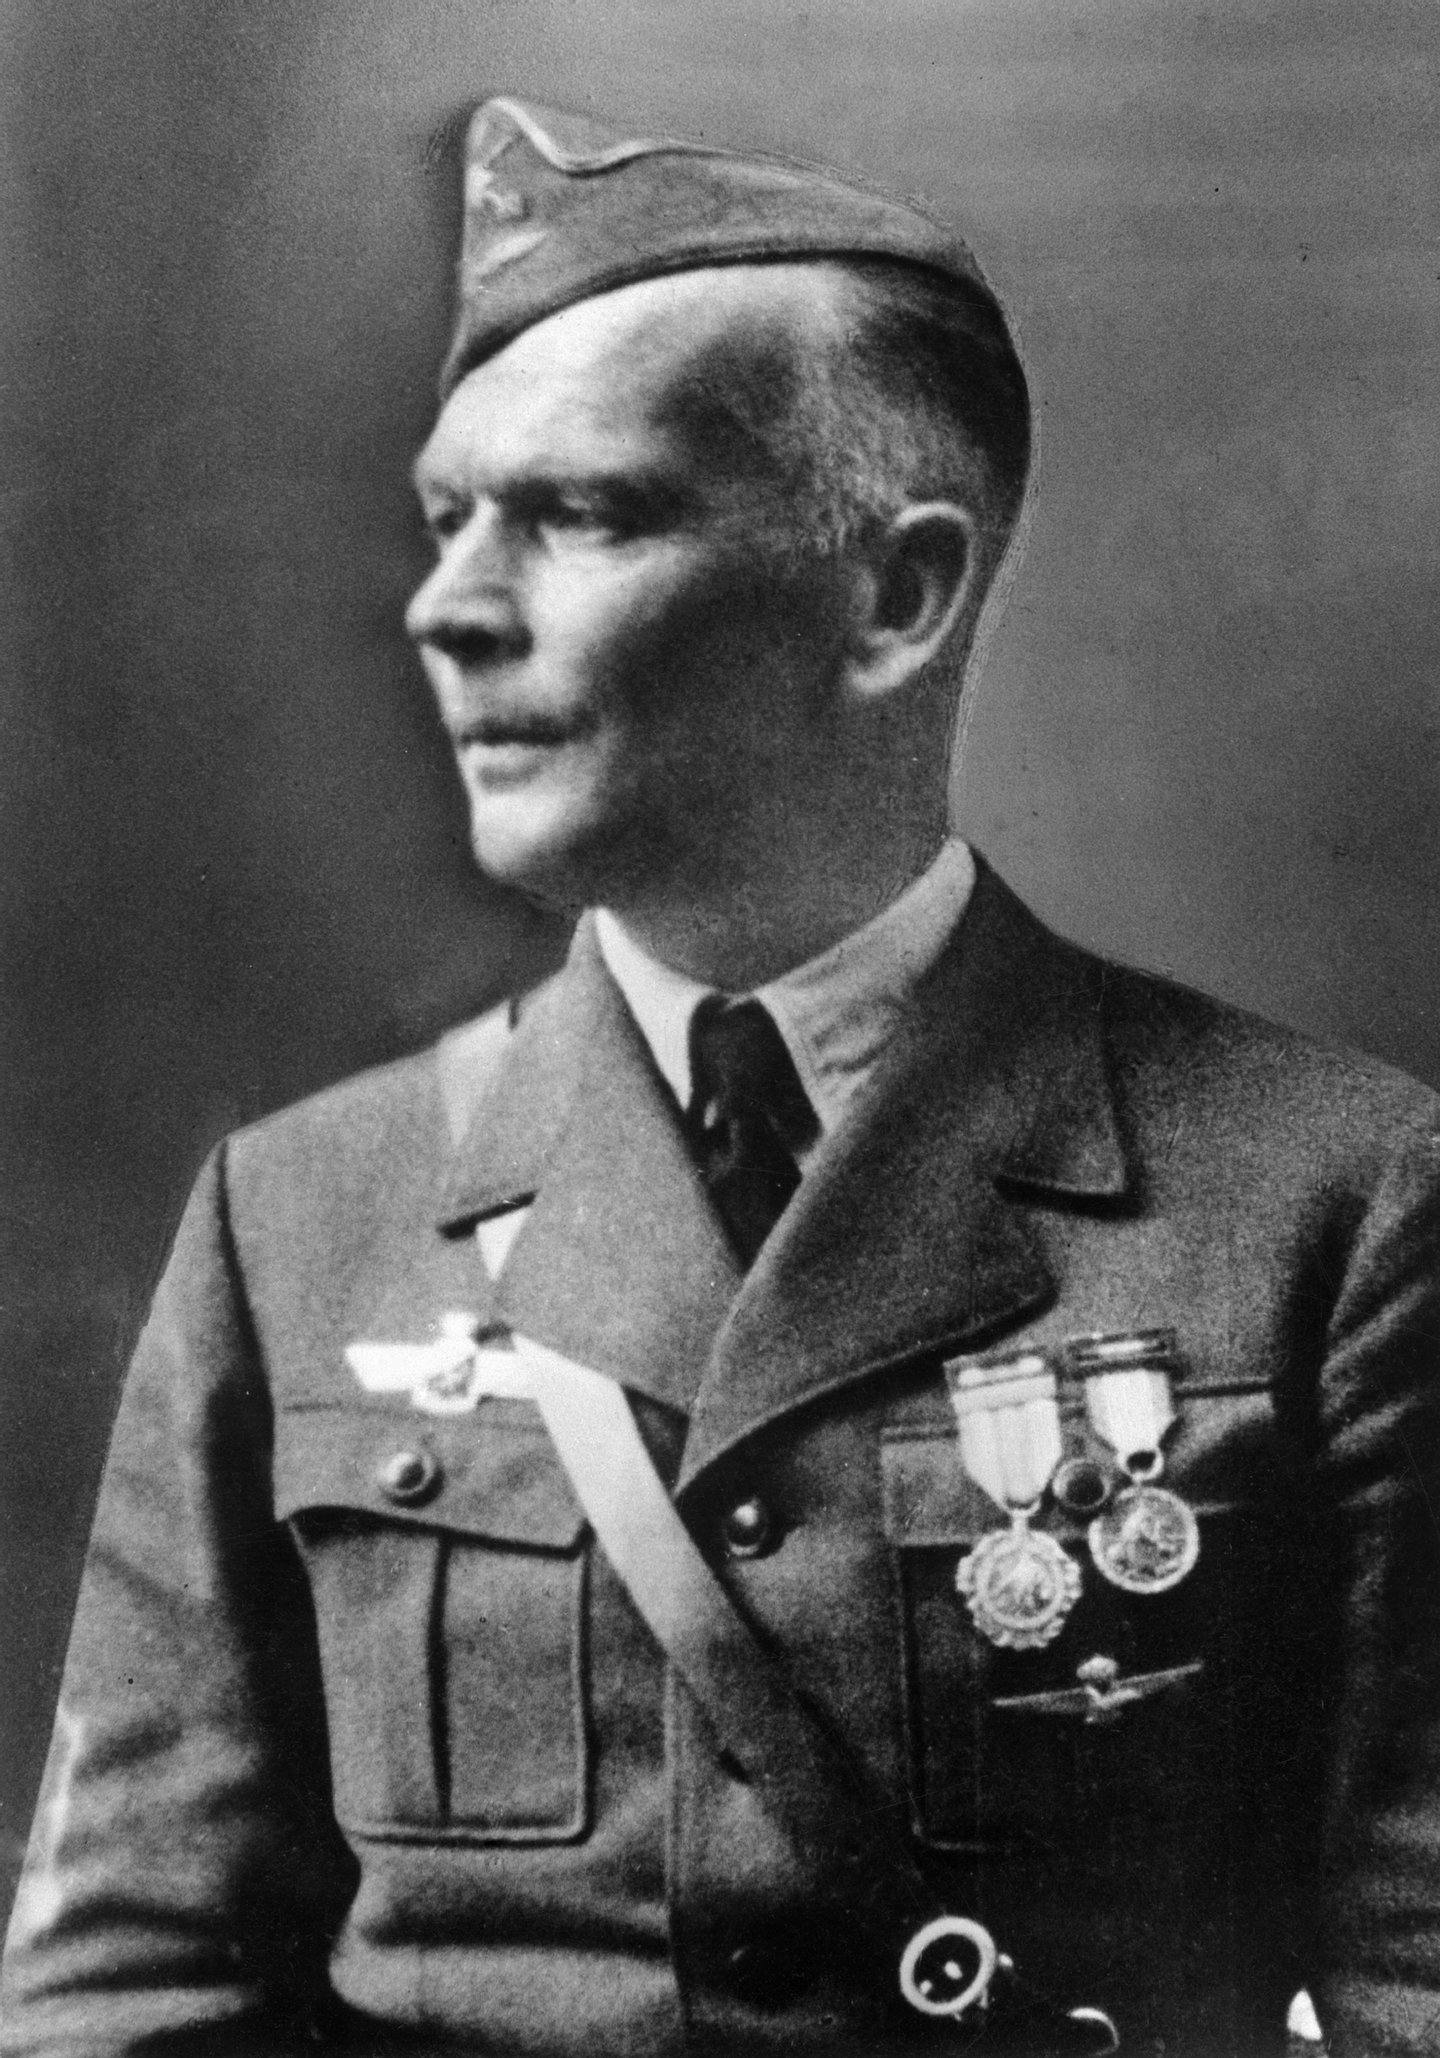 Richthofen, Wolfram Karl Ludwig Freiherr von1895-1945Officer, General Field Marshall (Air Force) , Germanyportrait as major general and commander of the Legion Condor after his return to germany (decorated spanish Medalla Militar in gold.